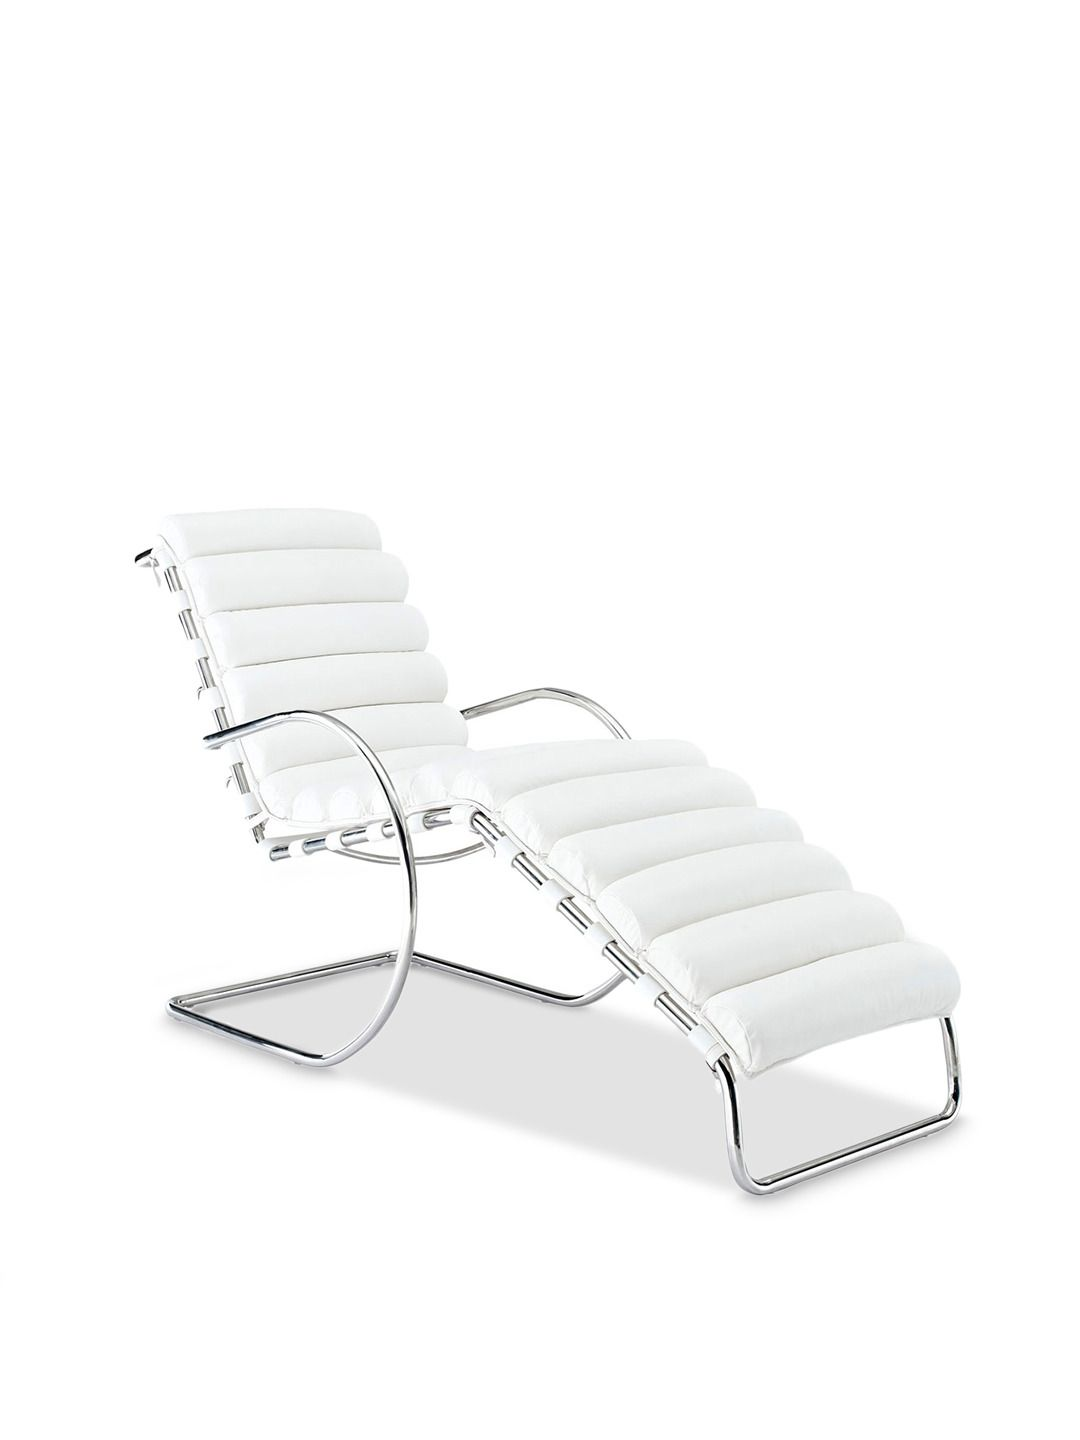 pearl river modern ny - ripple chaise by pearl river modern ny at gilt home design